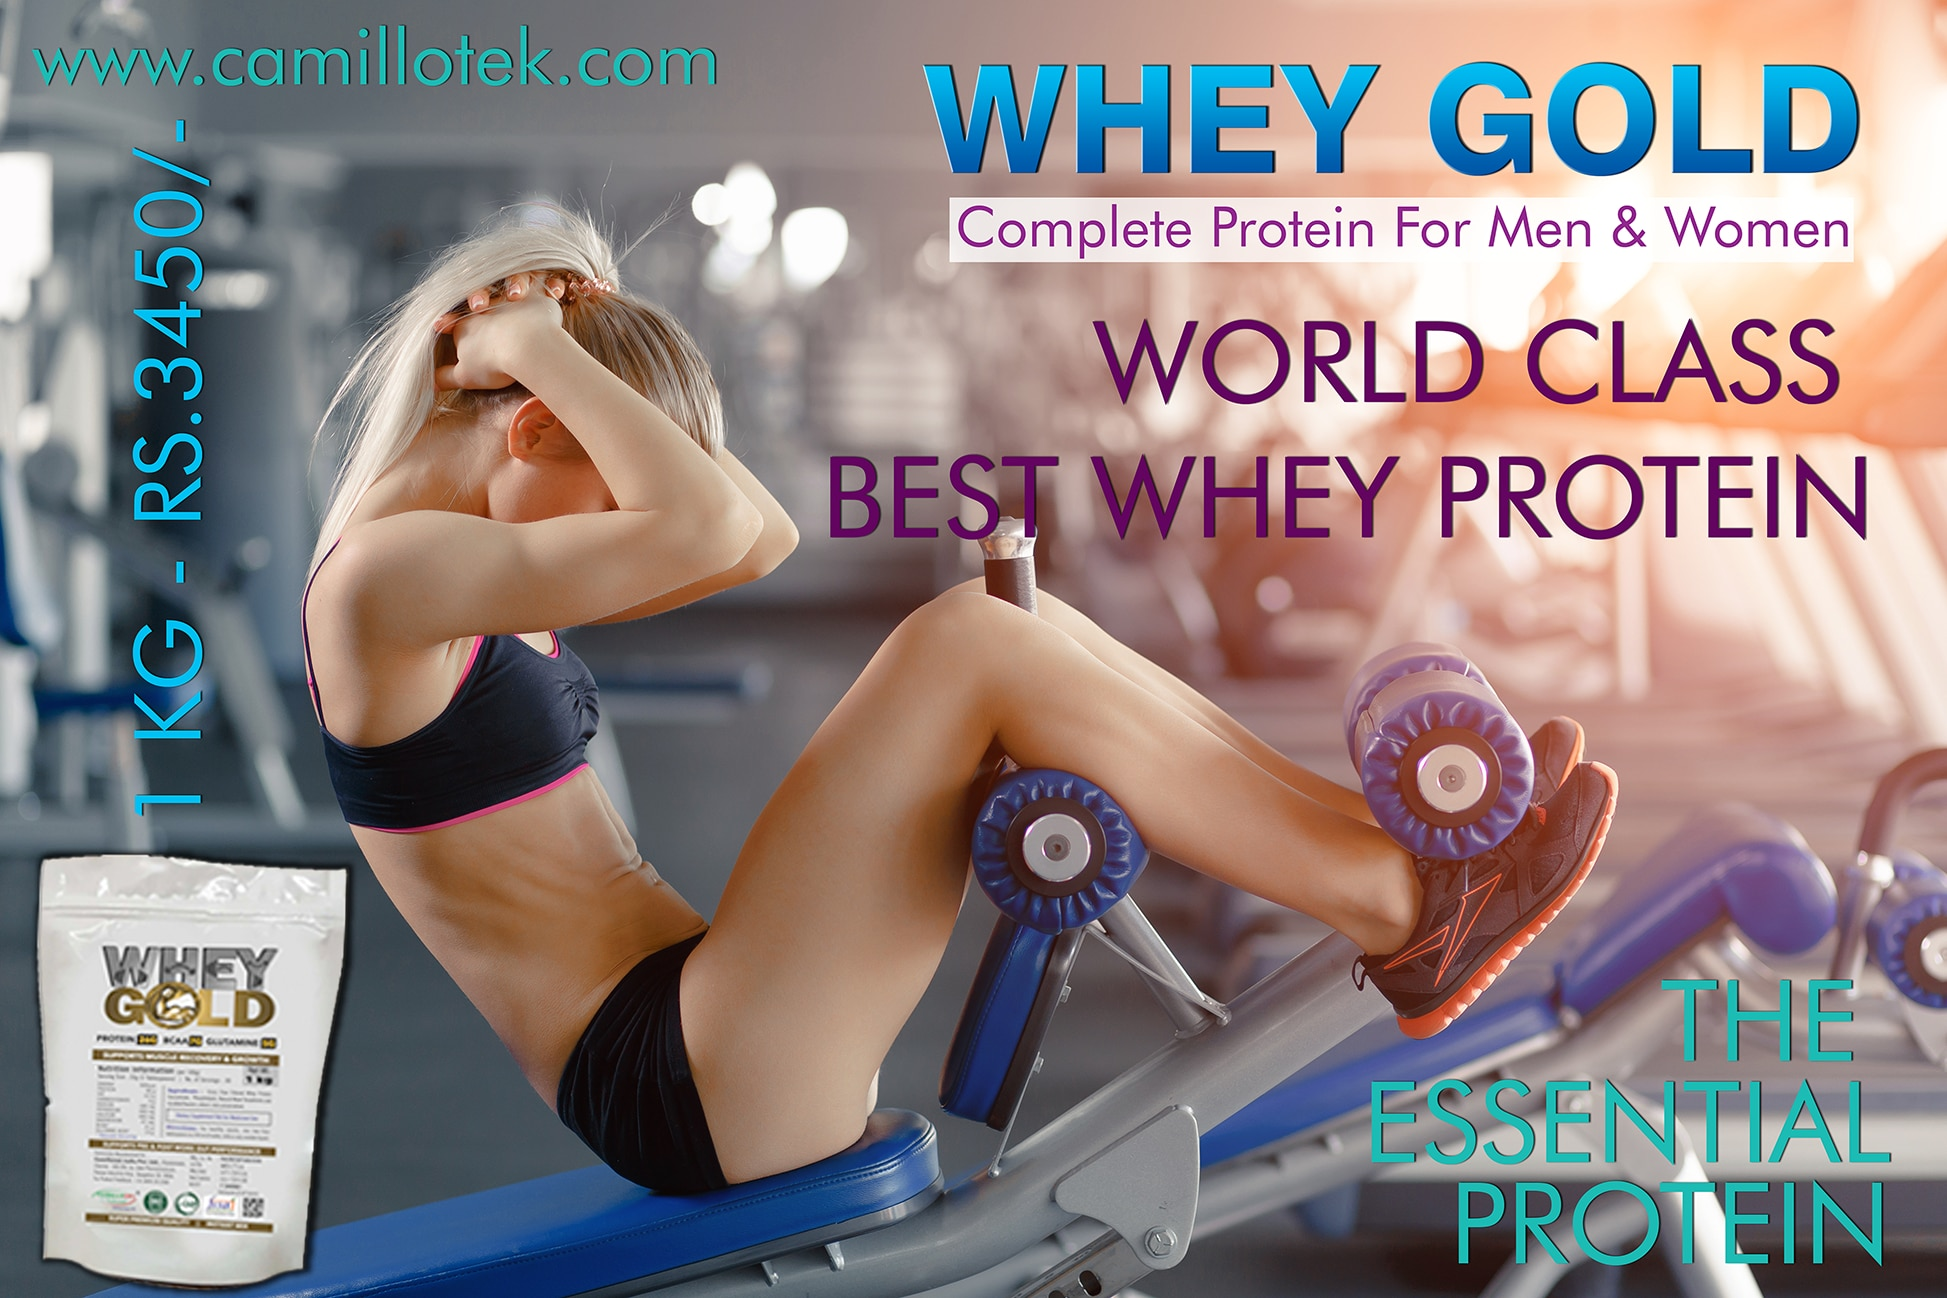 whey is the one of essential protein for all age groups of people. Whey is not only do the important role in weight loss but also a optimum nutrition whey. Whey protein natural powder, the world class best whey protein now in chennai, whey protein powder, whey protein isolate, whey standard gold, concentrated whey and whey protein powder supplement. whey protein supplement manufacturers, whey protein supplement suppliers, whey protein supplement exporters, wholesalers, traders in Chennai, India.